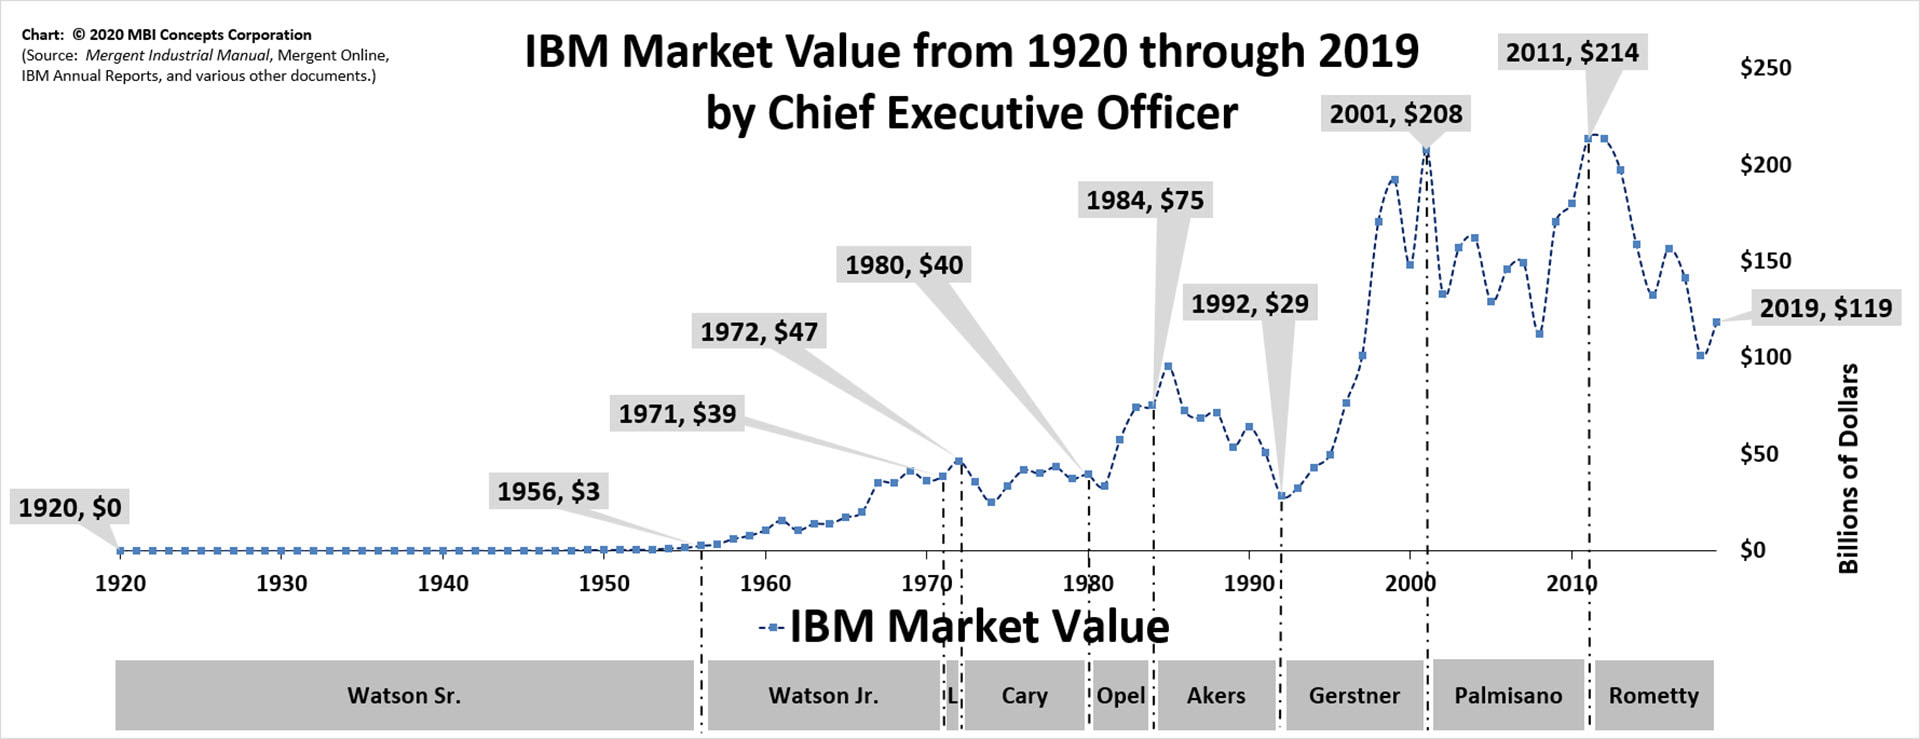 High quality line graph showing IBM's Market Value from 1920 through 2019 aligned by chief executive officer (CEO).